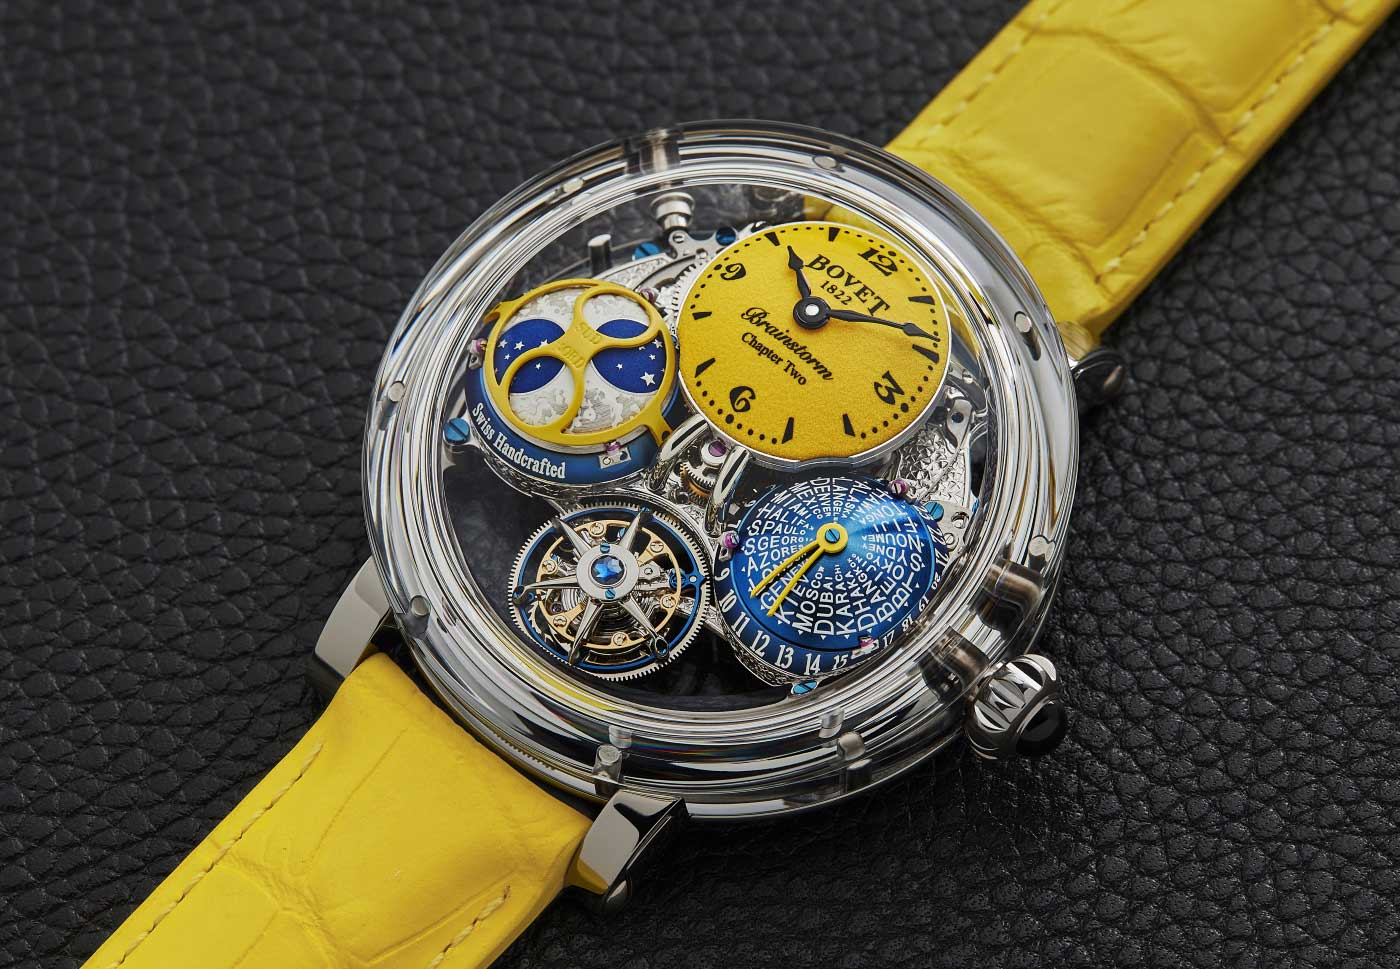 Bovet-recital-26-brainstorm-chapter-two-sunshine_side—europa-star-watch-magazine-2020